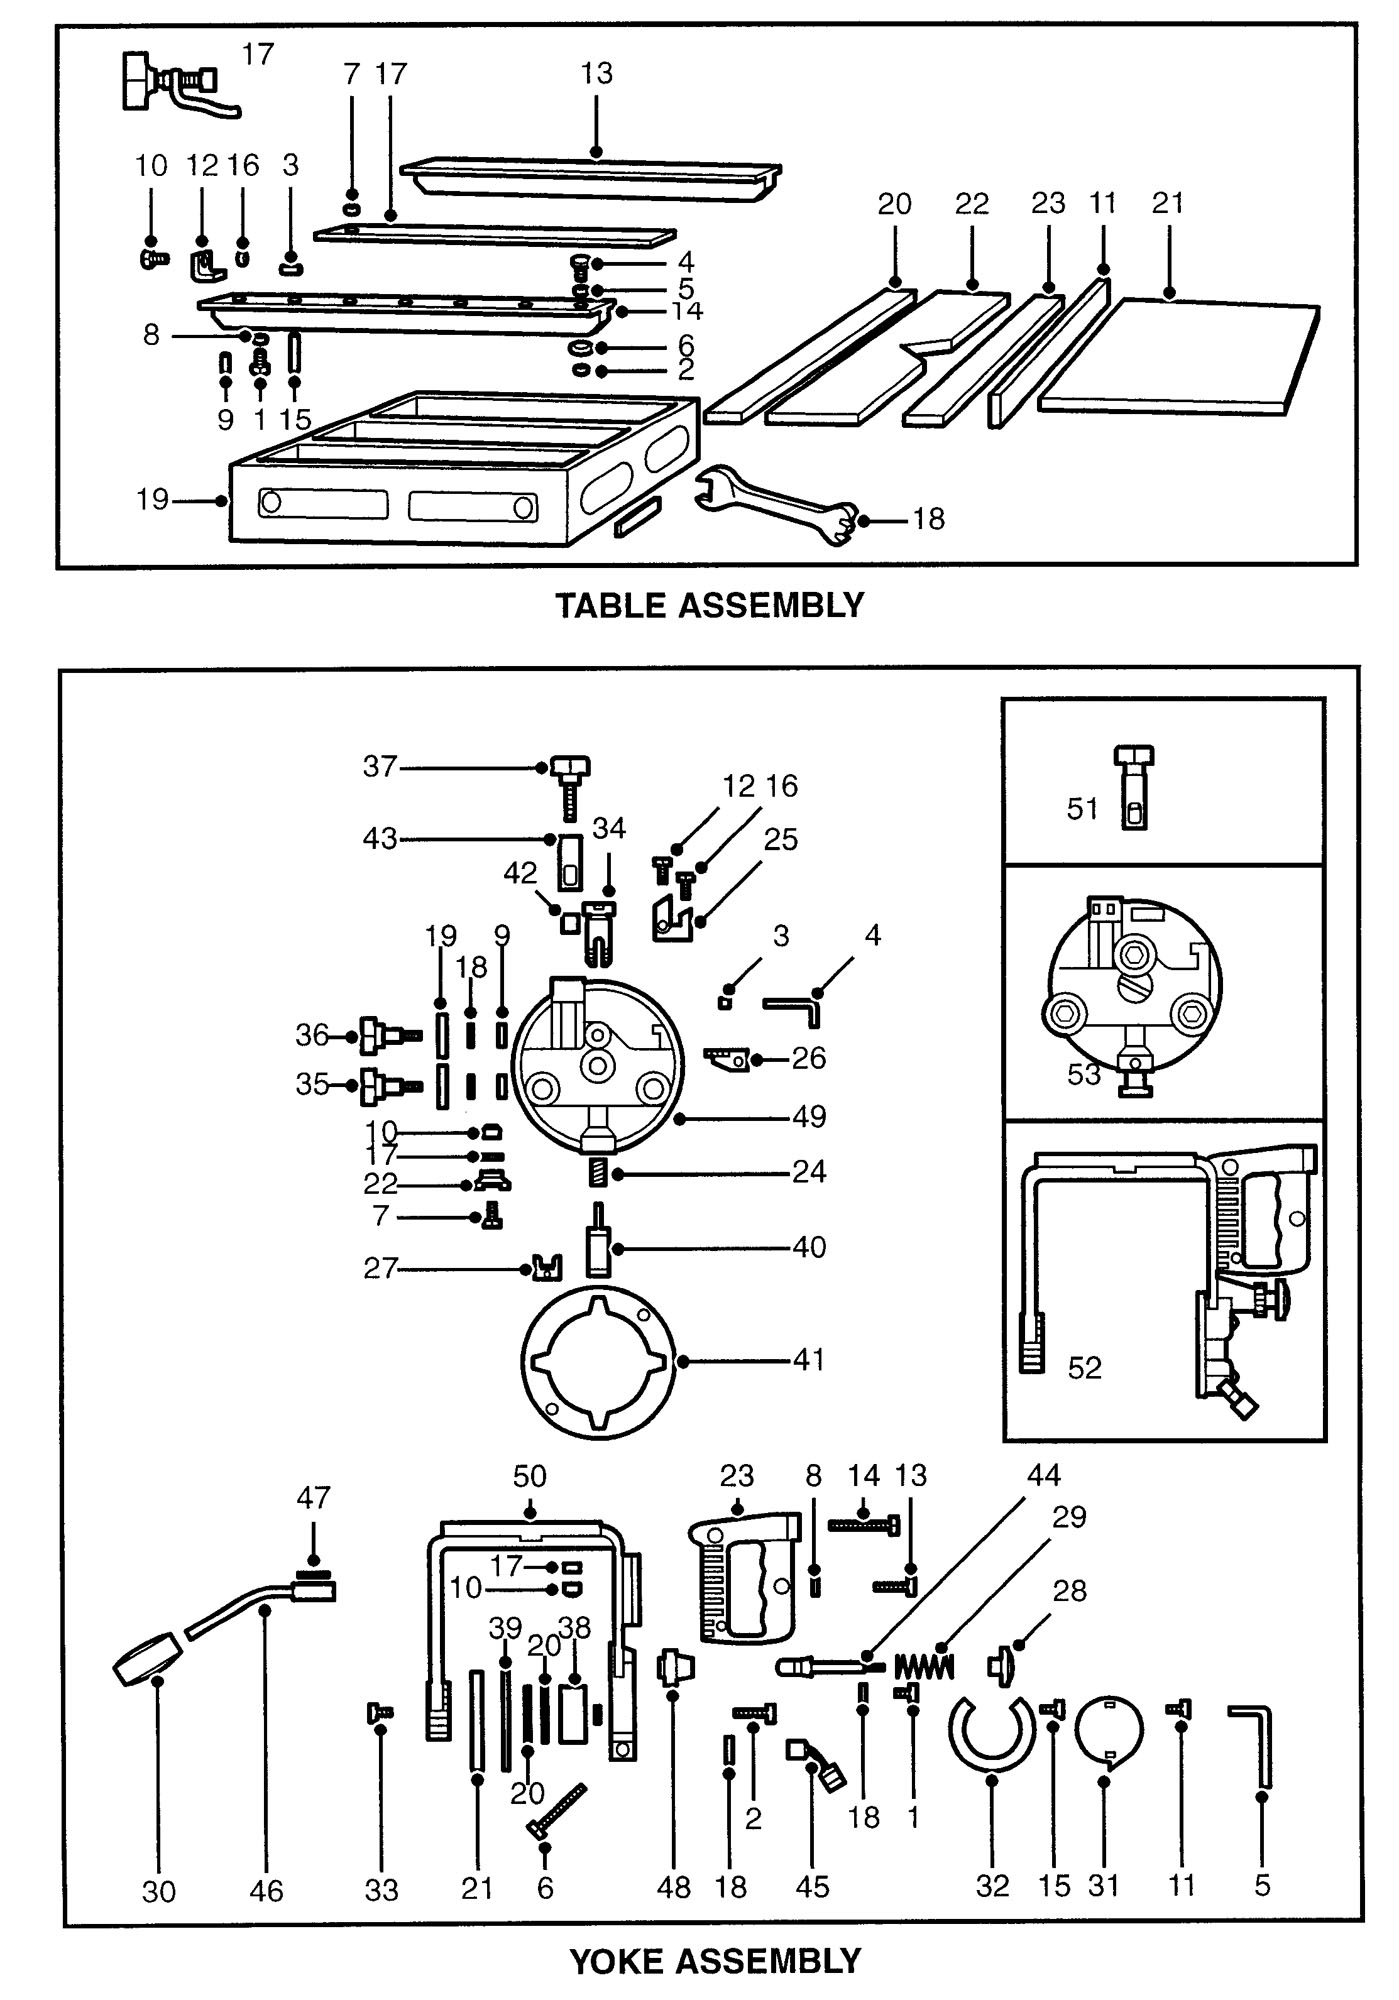 Dewalt Radial Arm Saw Wiring Diagram